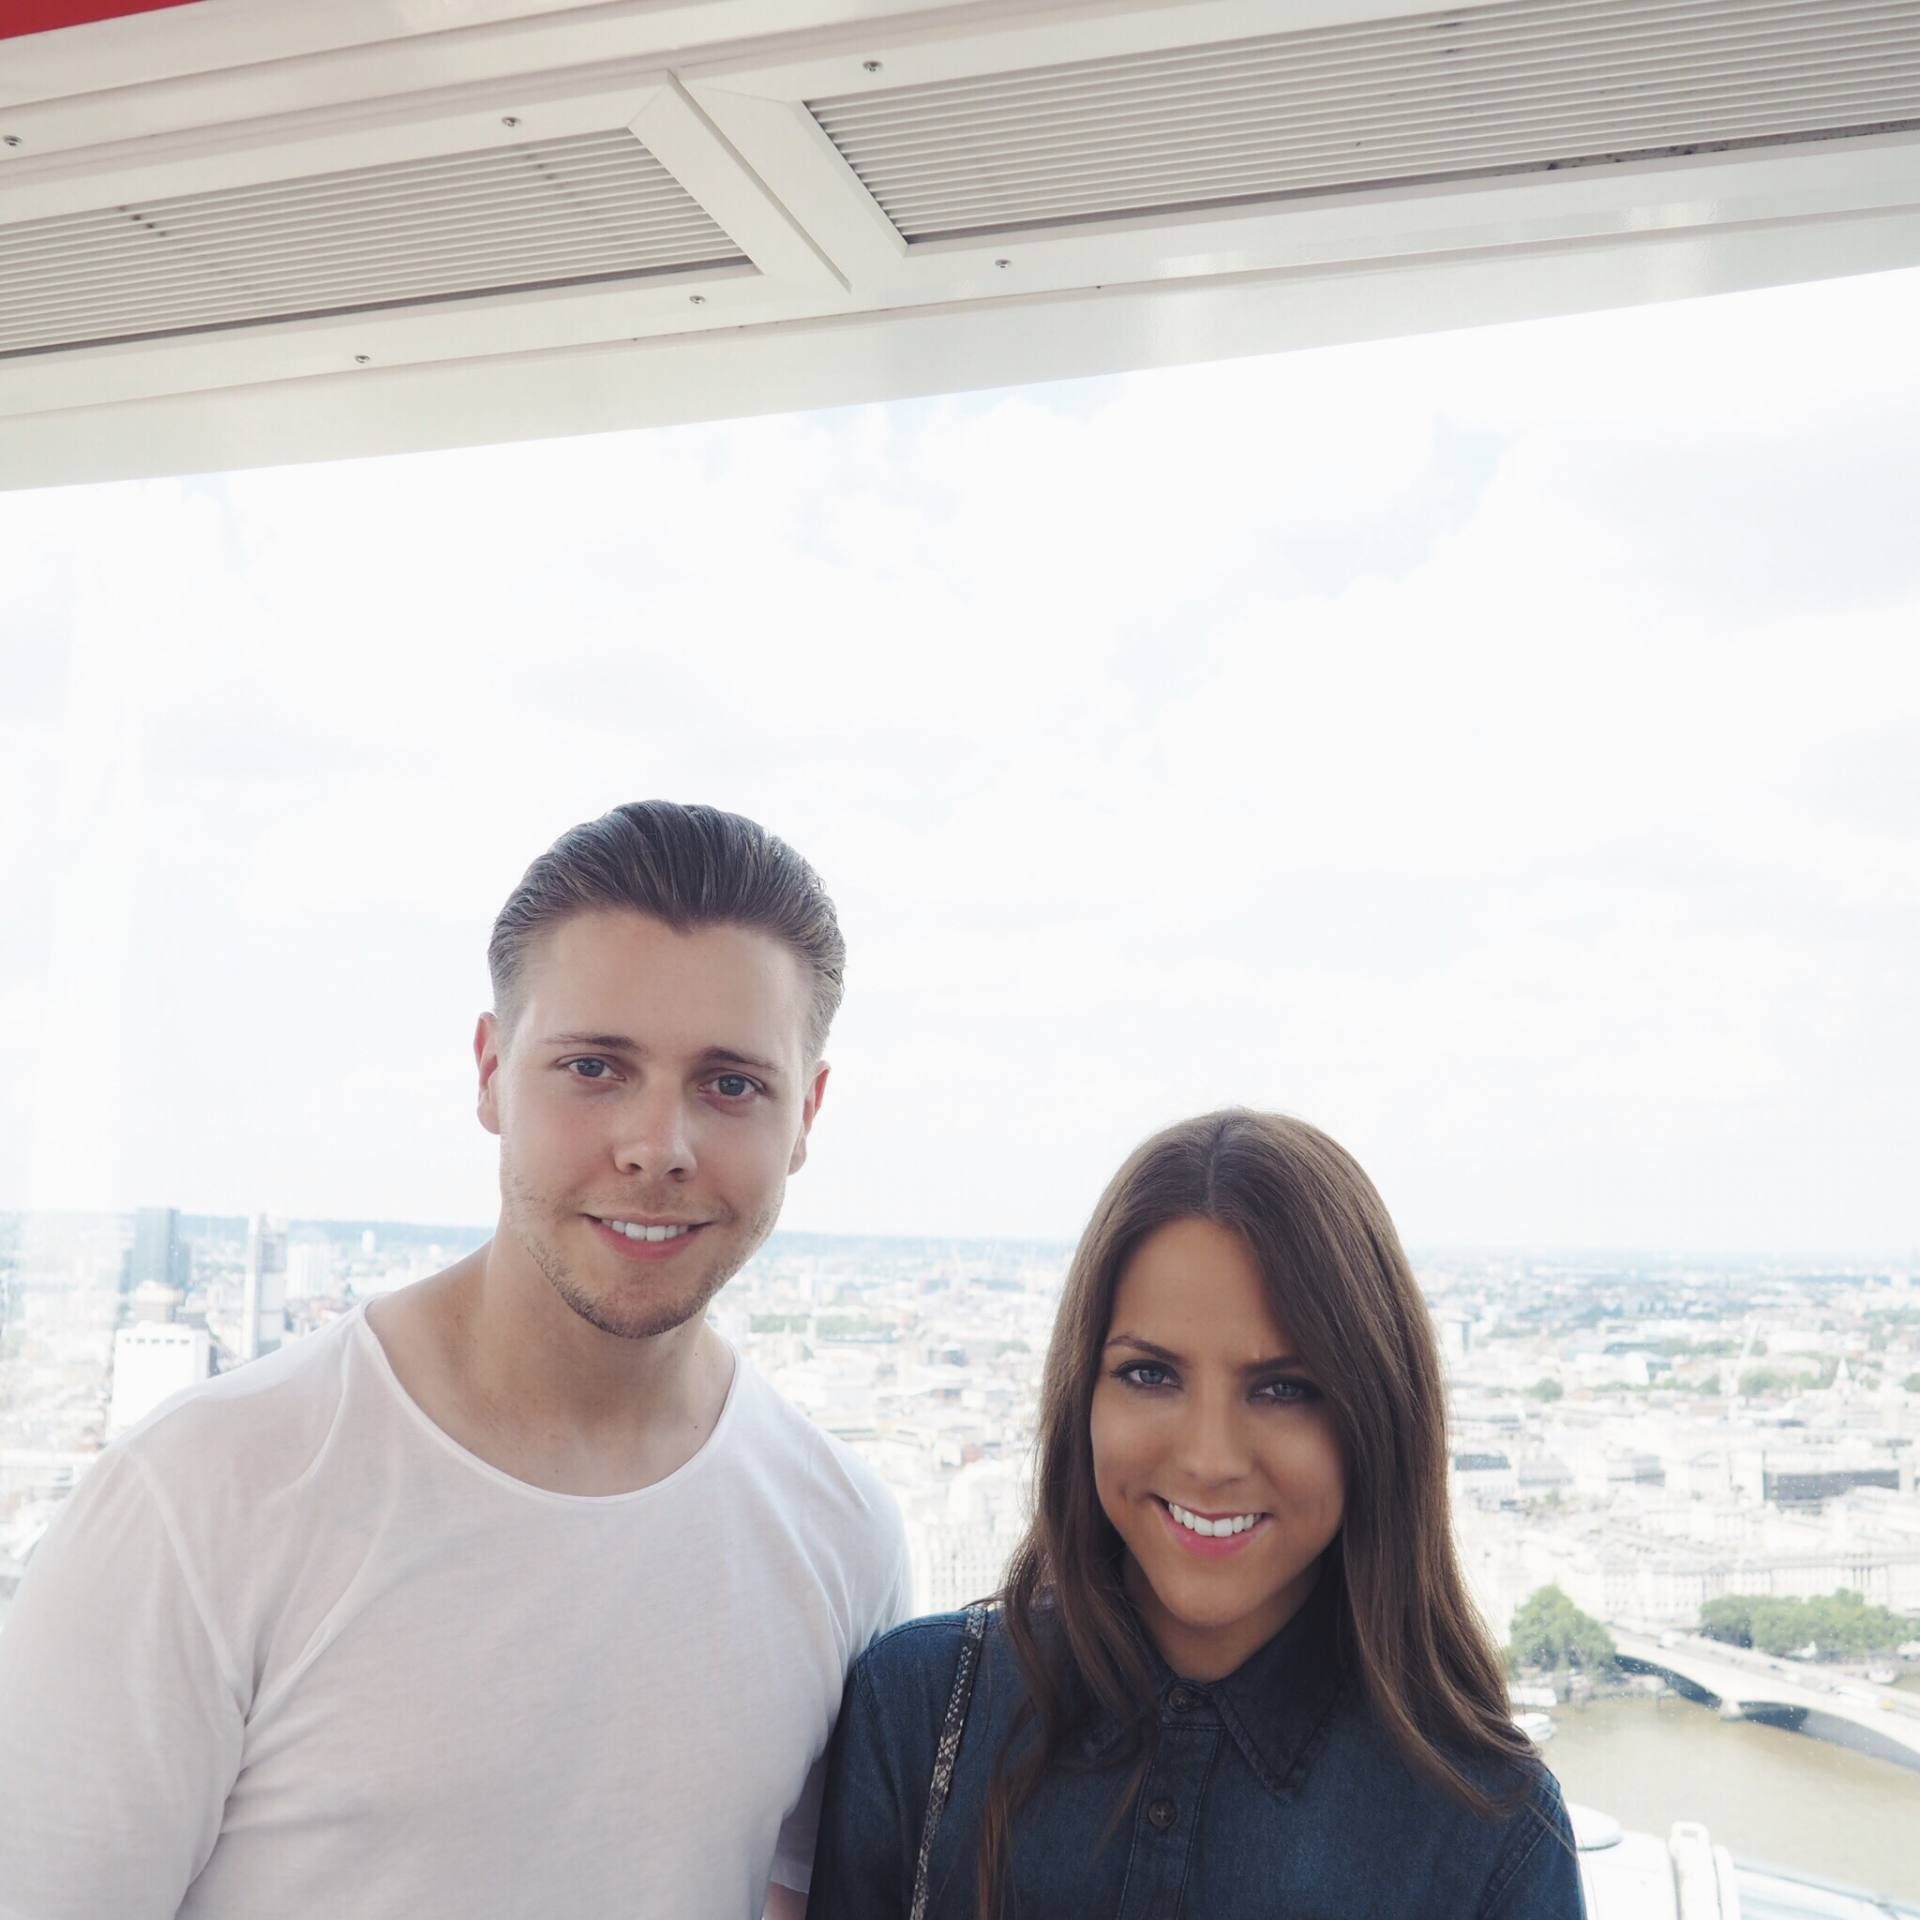 Tourists on the London Eye